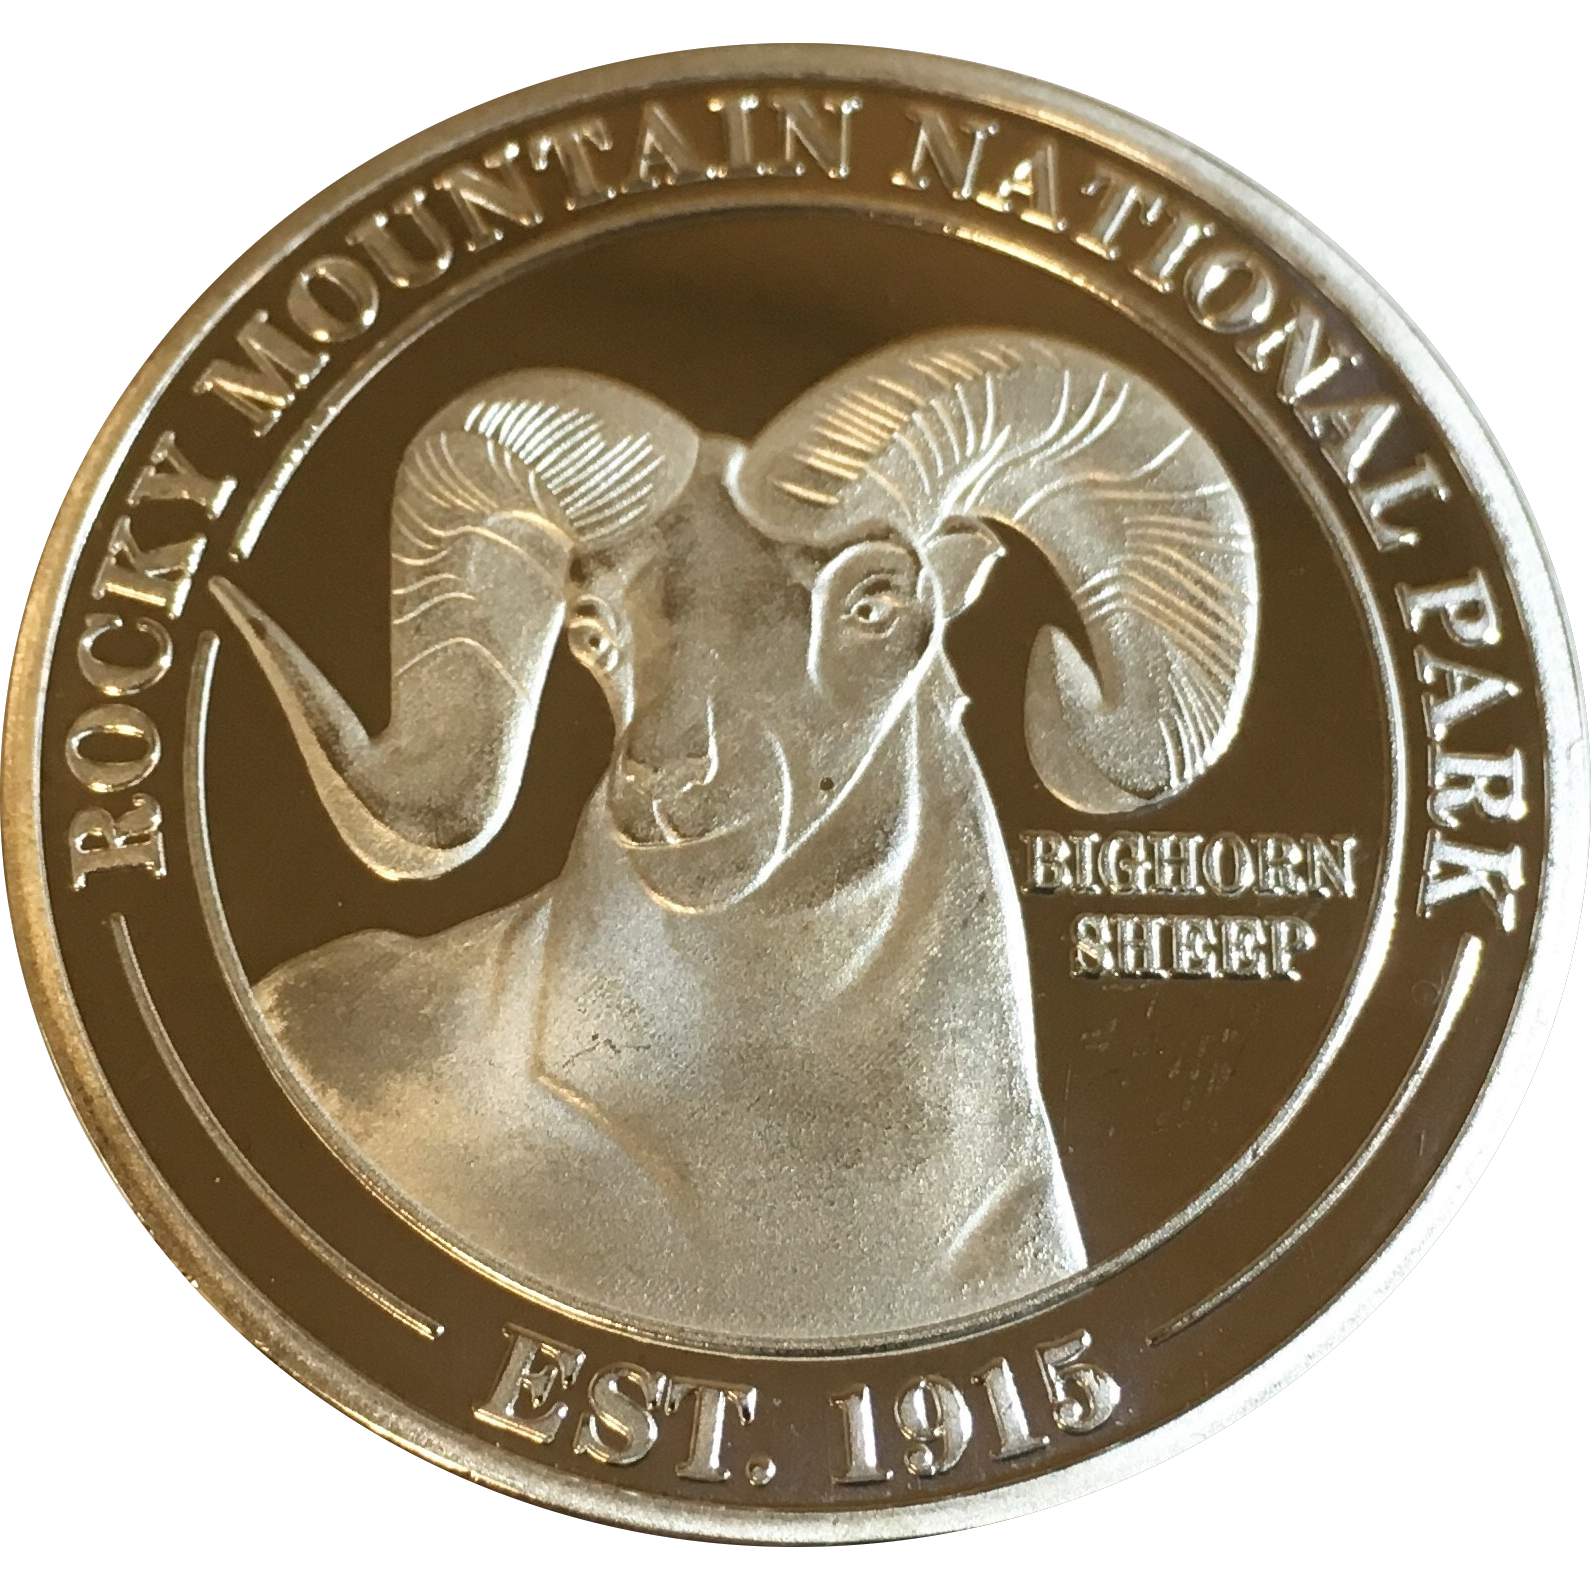 Silver coin front